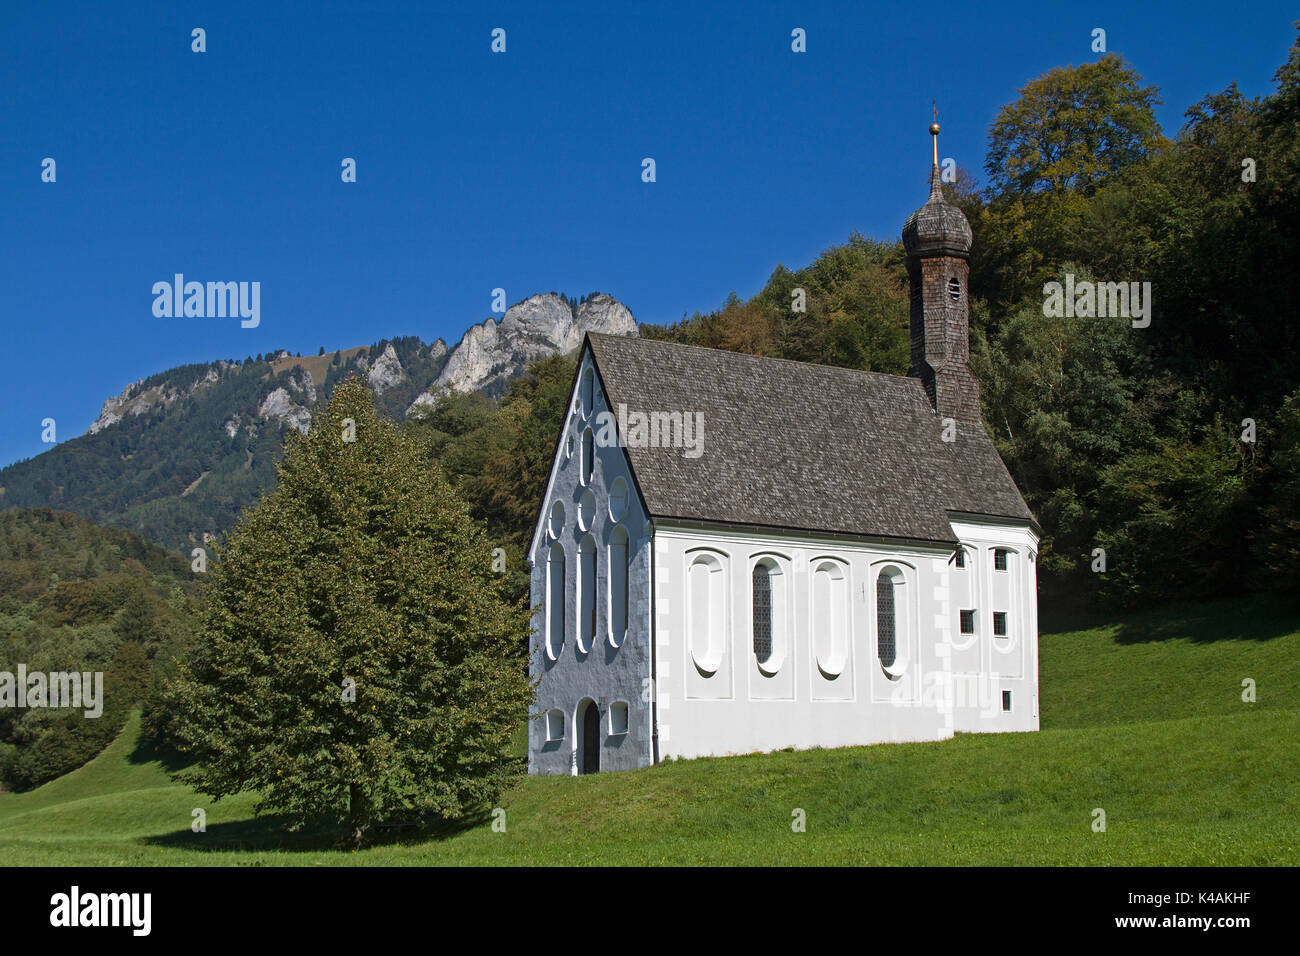 Meintest Du Direkt An Der Grenze Zu Tirol Im Gemeindebereich Von Nussdorf Am Fuß Des Kranzhorns Steht Die Kleine Kapelle Heilig Kreuz Directly On The Border To Tyrol In The Municipality Area Of Nuss - Stock Image